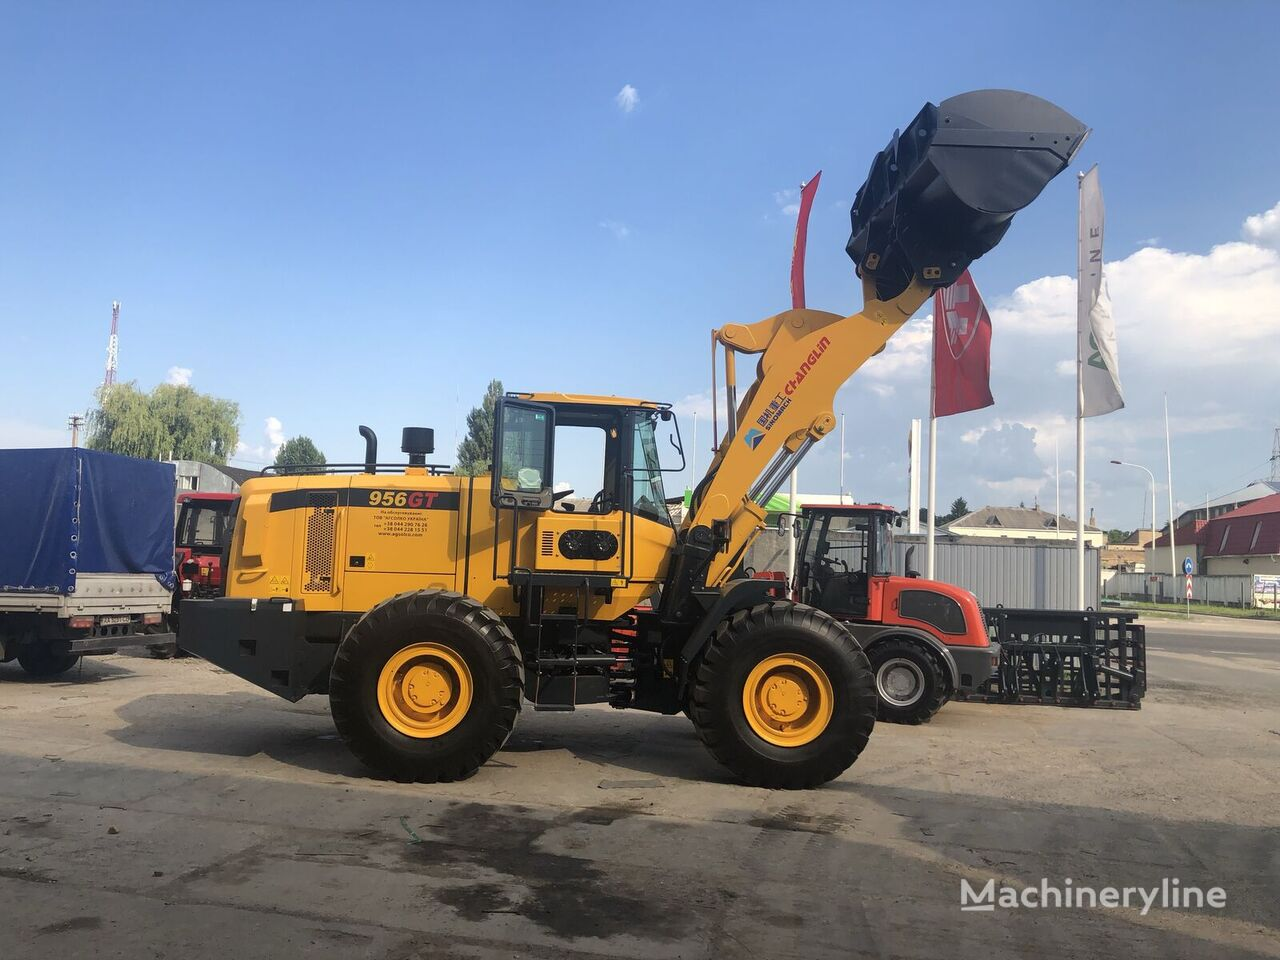 new CHANGLIN 956GT (L) wheel loader